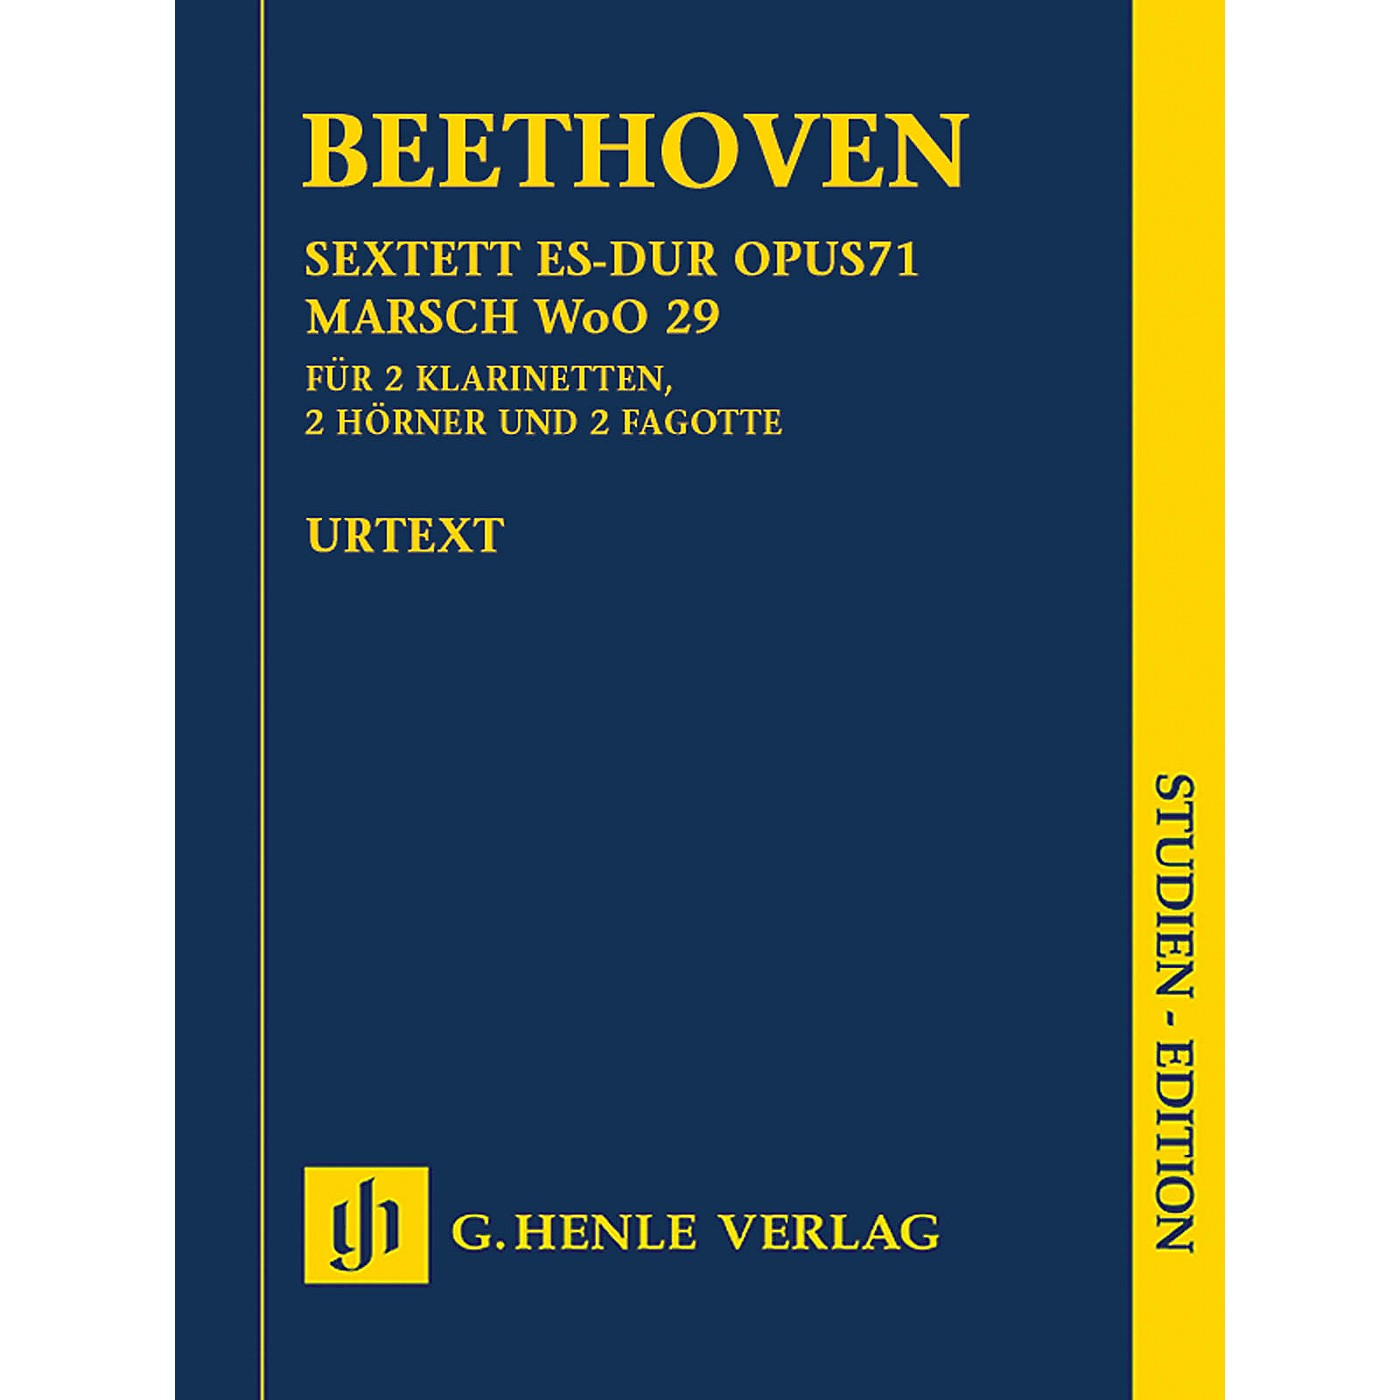 G. Henle Verlag Sextet in E-flat Major, Op. 71 and March, WoO 29 Henle Study Scores by Beethoven Edited by Egon Voss thumbnail